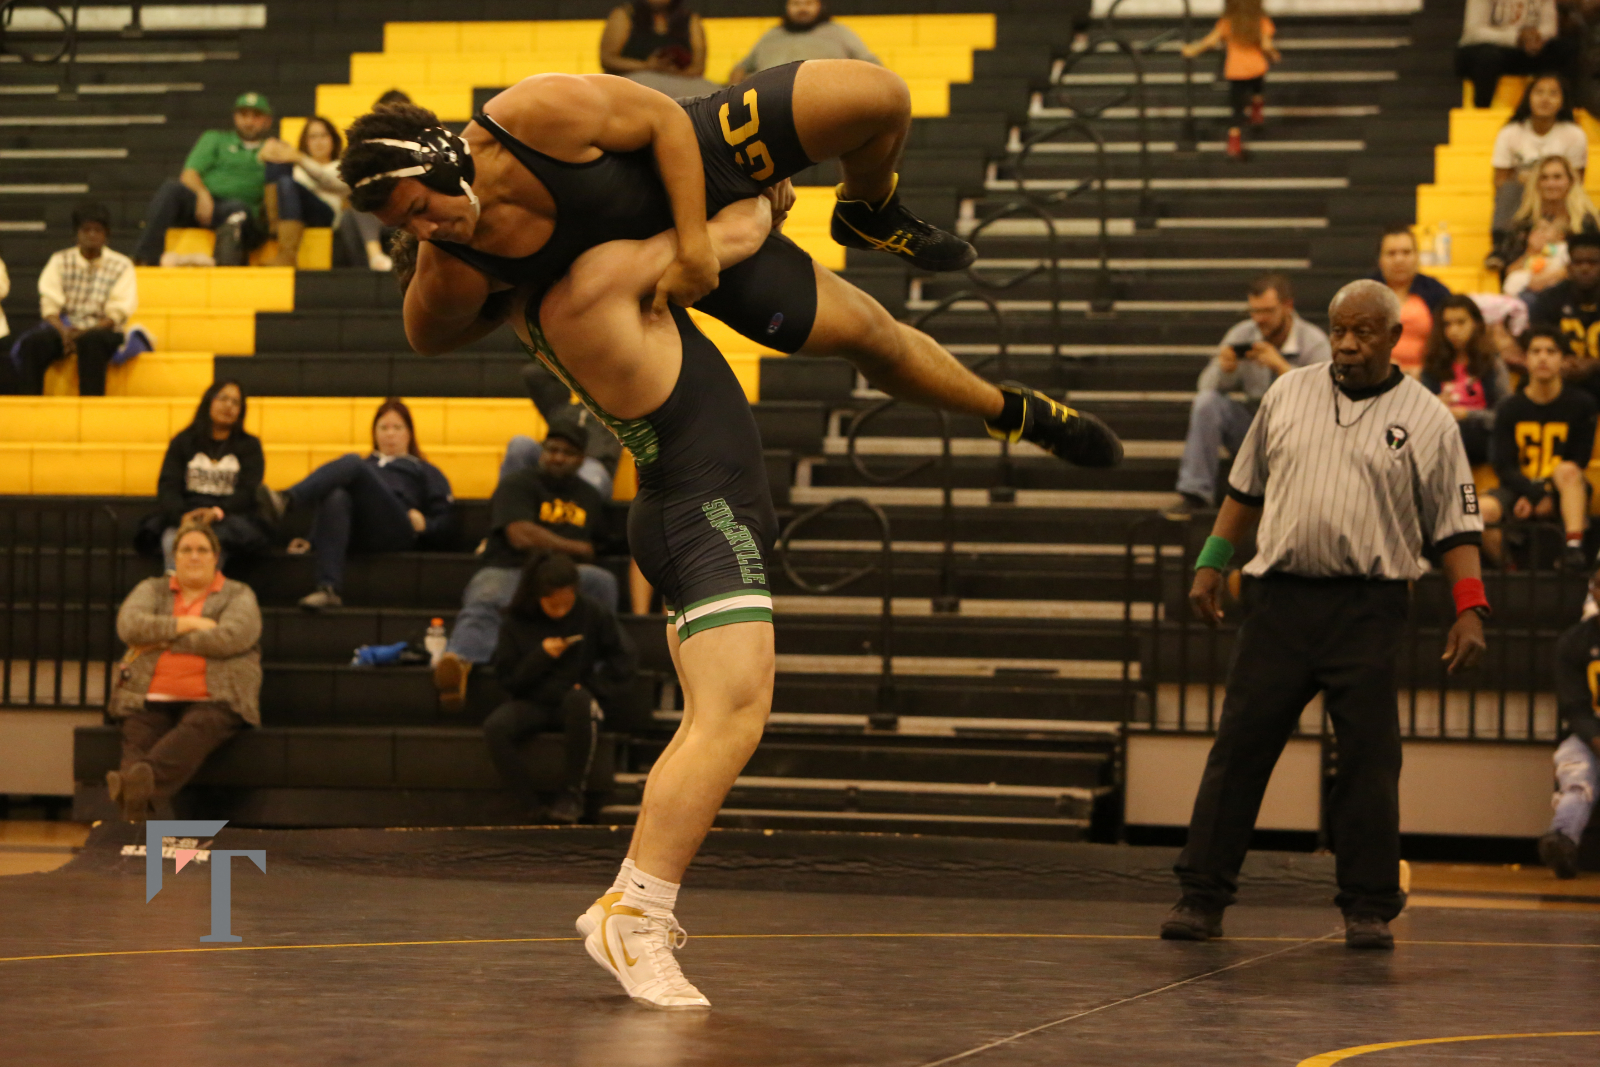 Coach Tucker to Head up the South All-Star Wrestling Team